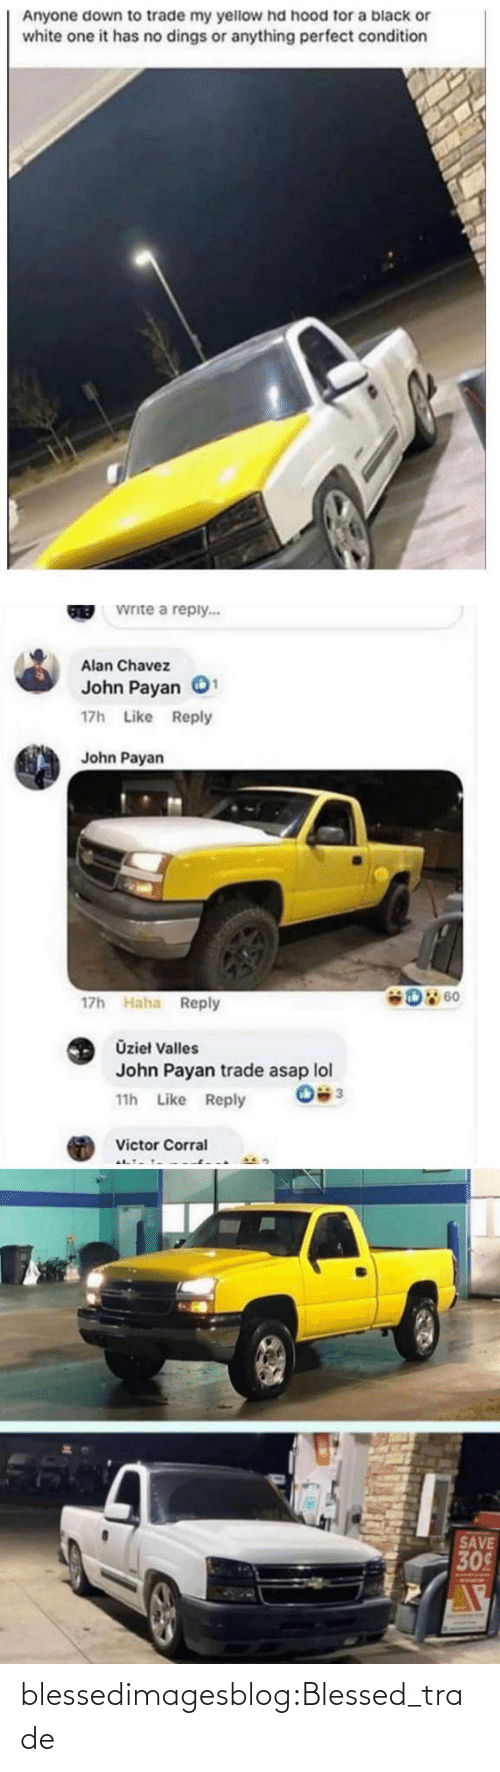 yellow: Anyone down to trade my yellow hd hood for a black or  white one it has no dings or anything perfect condition  Write a reply...  GREB  Alan Chavez  John Payan  17h Like Reply  John Payan  D 60  17h Haha Reply  Üzieł Valles  John Payan trade asap lol  11h Like Reply  Victor Corral  SAVE  309 blessedimagesblog:Blessed_trade